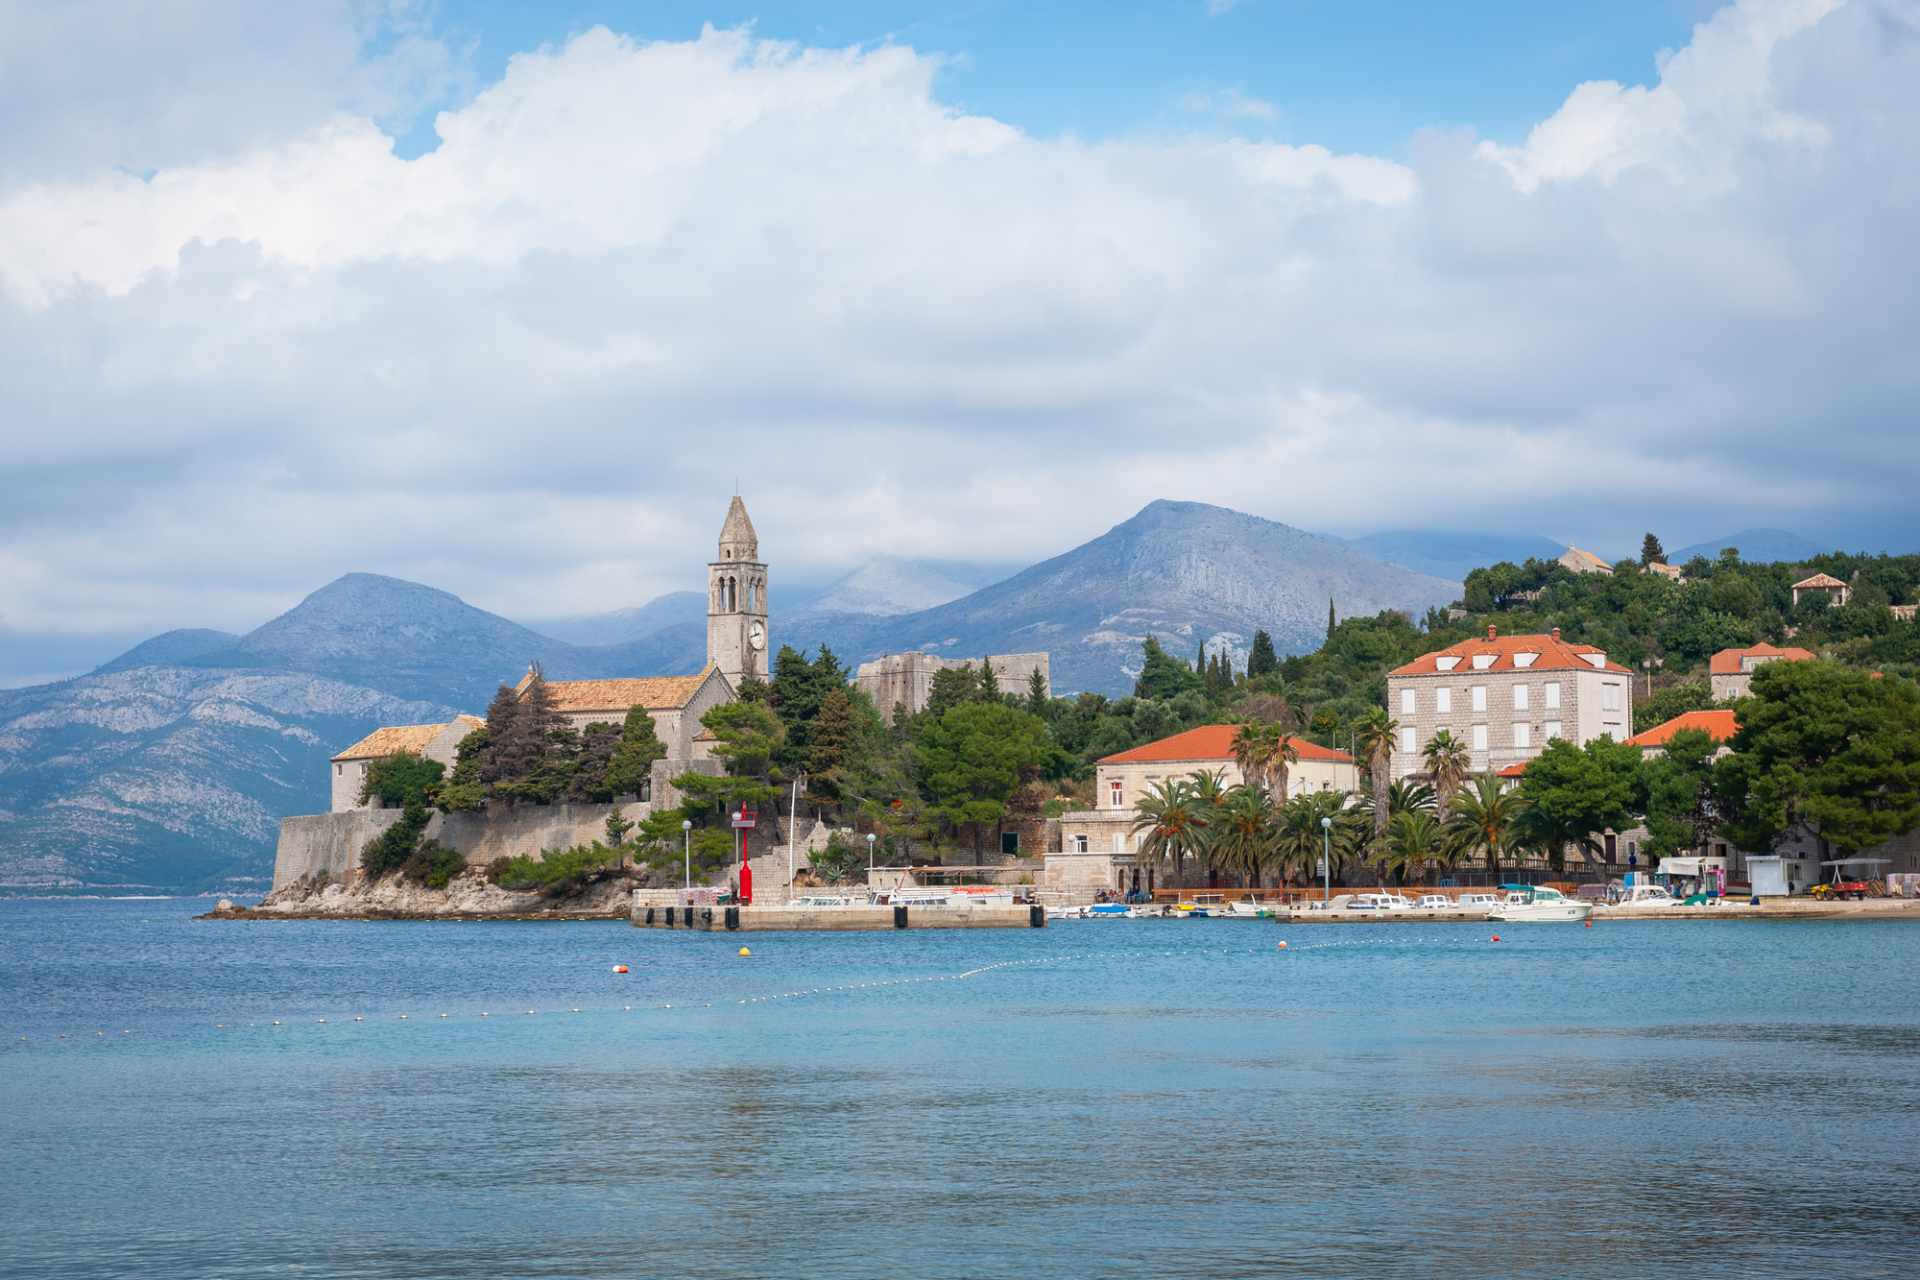 blue-sea-leading-to-franciscan-monastery-on-lopud-island-with-mountains-in-background-3-days-in-dubrovnik-itinerary